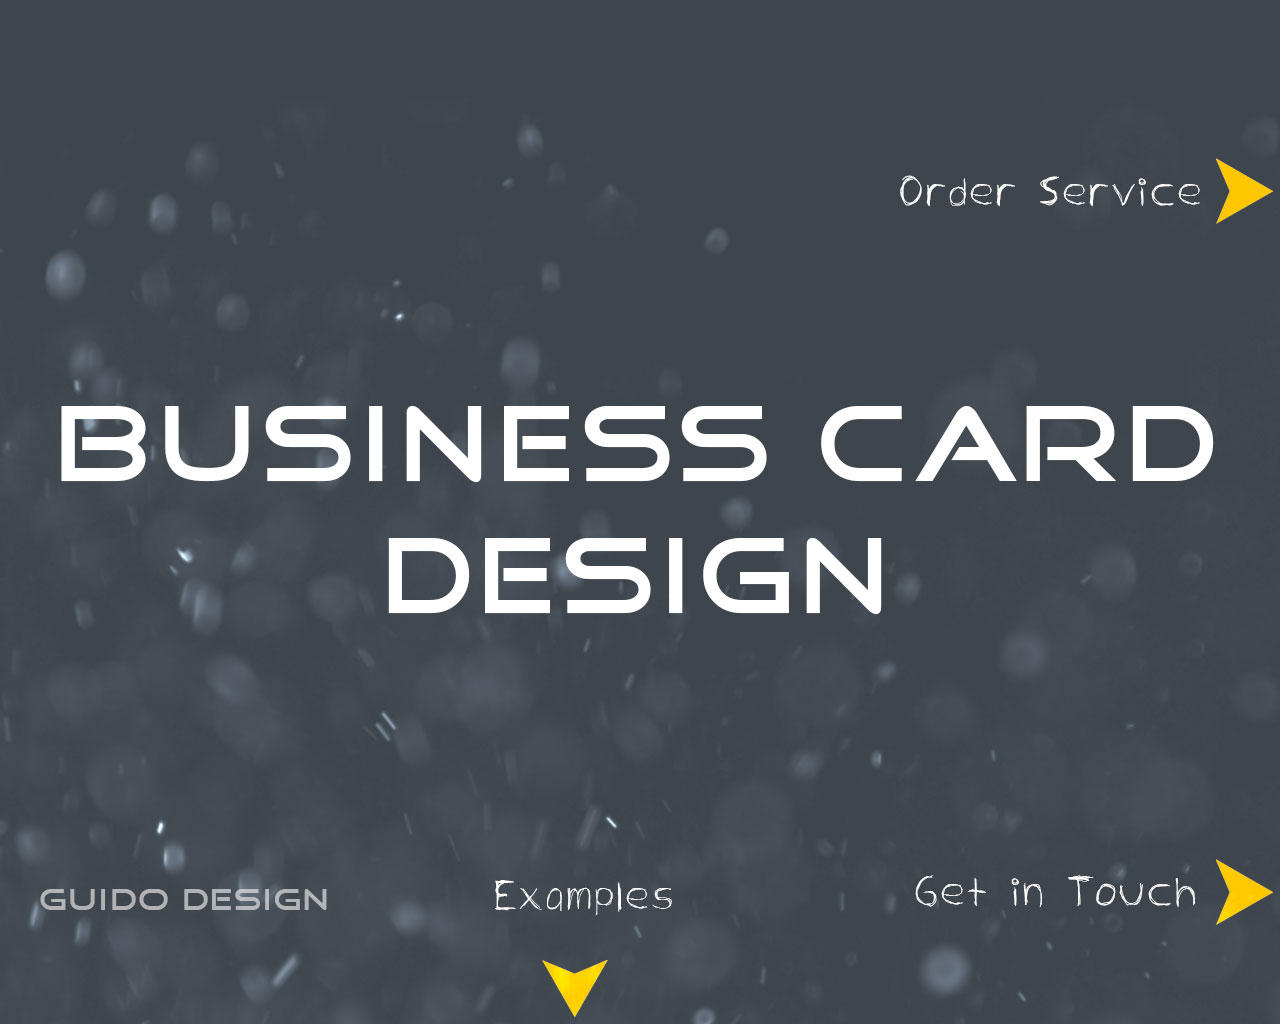 Create Impressive Business Card Design by GuidoDesign - 66290